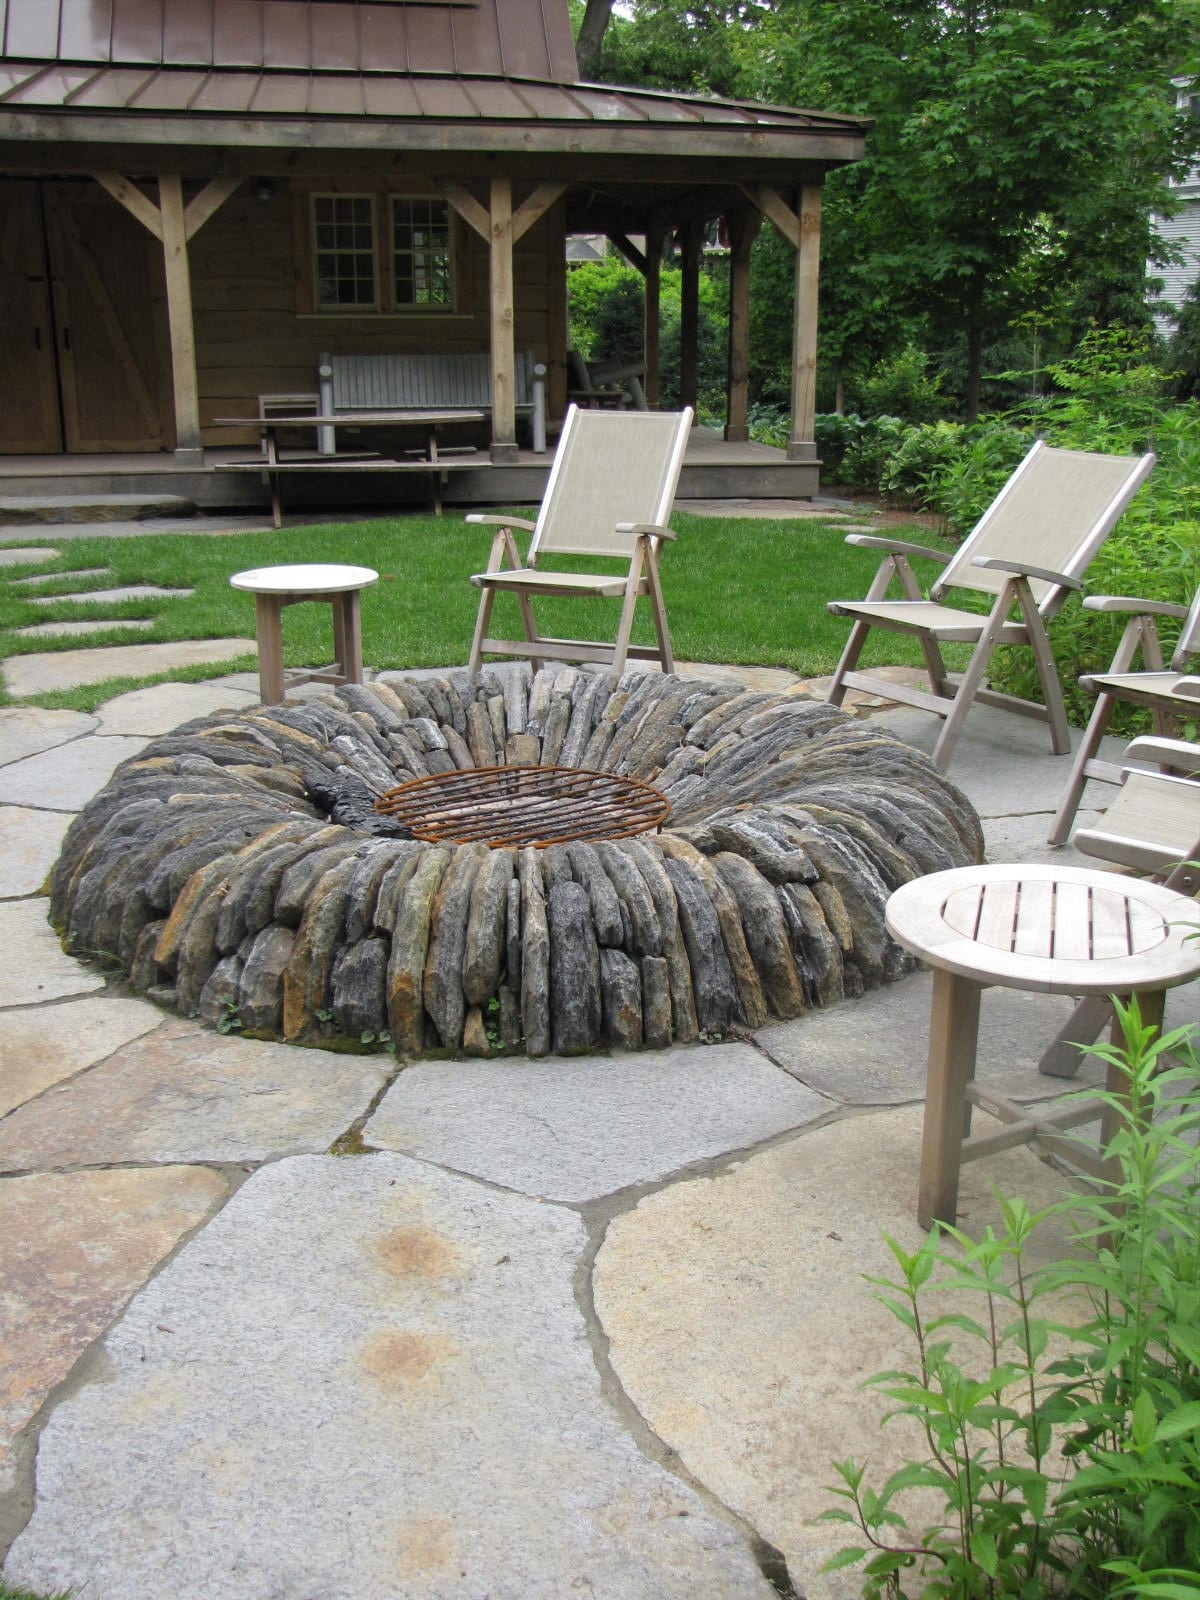 Gregory Lombardi Designed This Outdoor Fire Pit Using Connecticut Goshen  Stone. The Design Retains A Modern Yet Natural And Earthy Feeling.